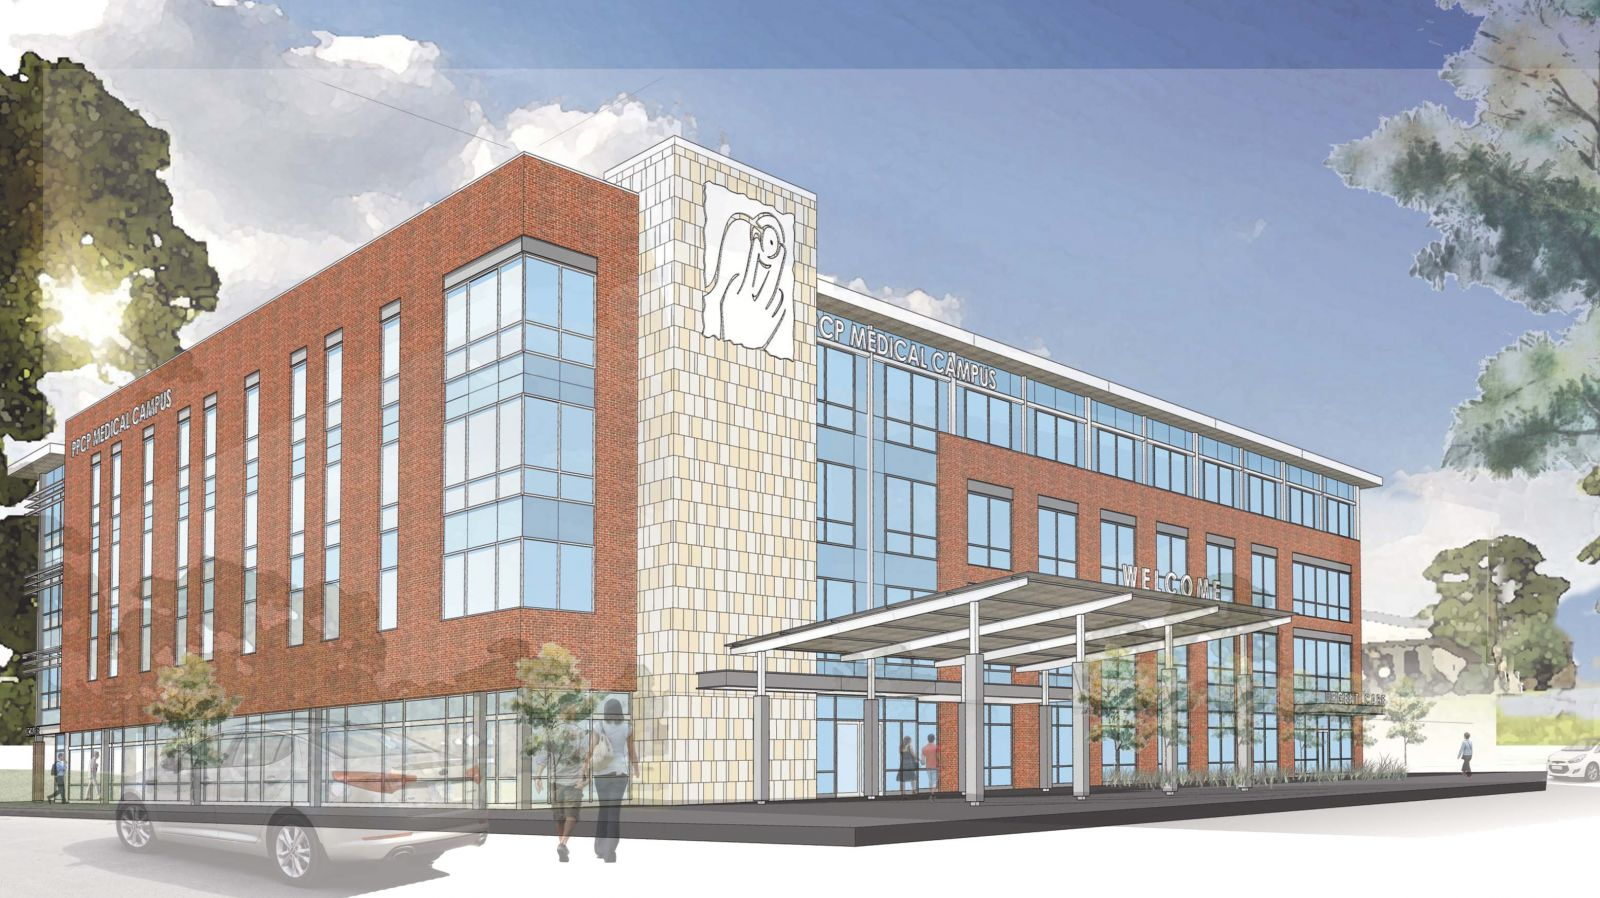 Ground was broken Wednesday on the first building of a planned six-building medical complex for Palmetto Primary Care Physicians in the Nexton community in Summerville. (Rendering/Provided)